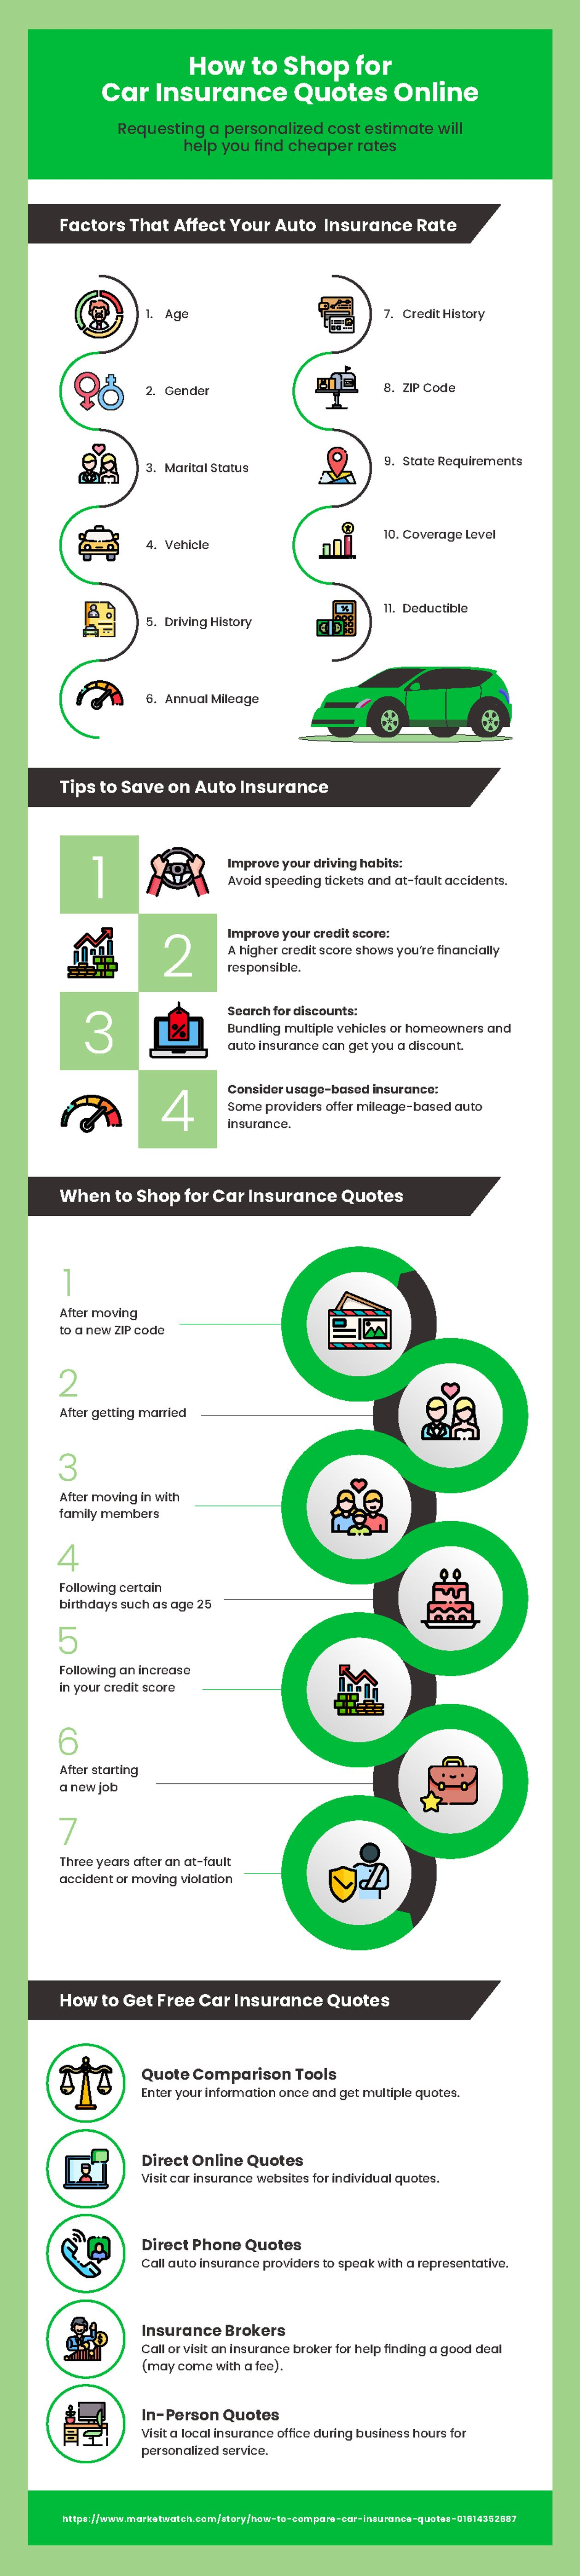 How to Shop for Car Insurance Quotes Online